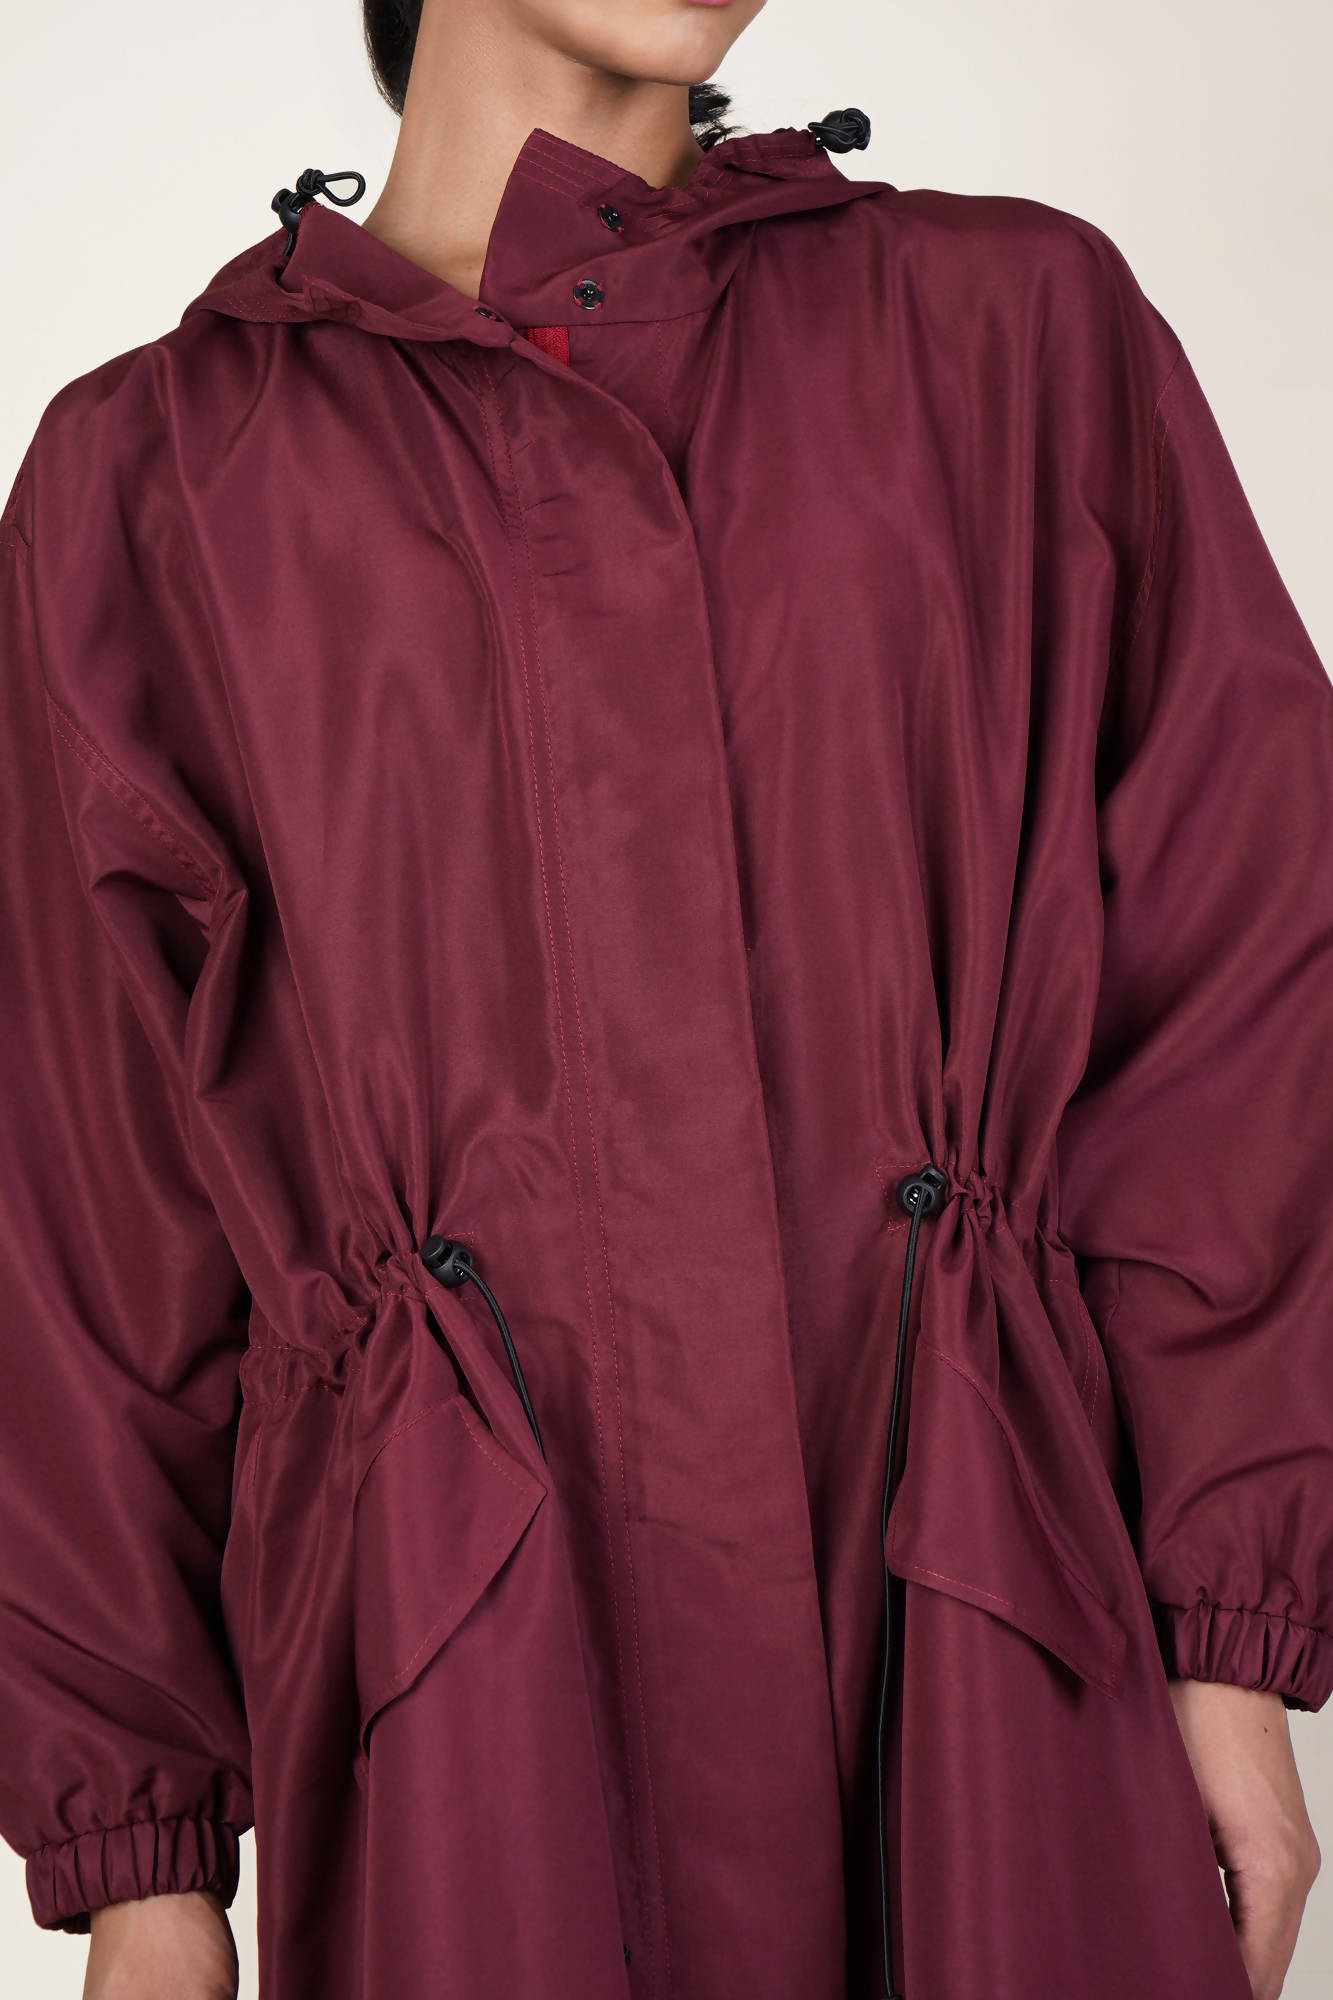 Protective Outerwear Design 3 in Maroon